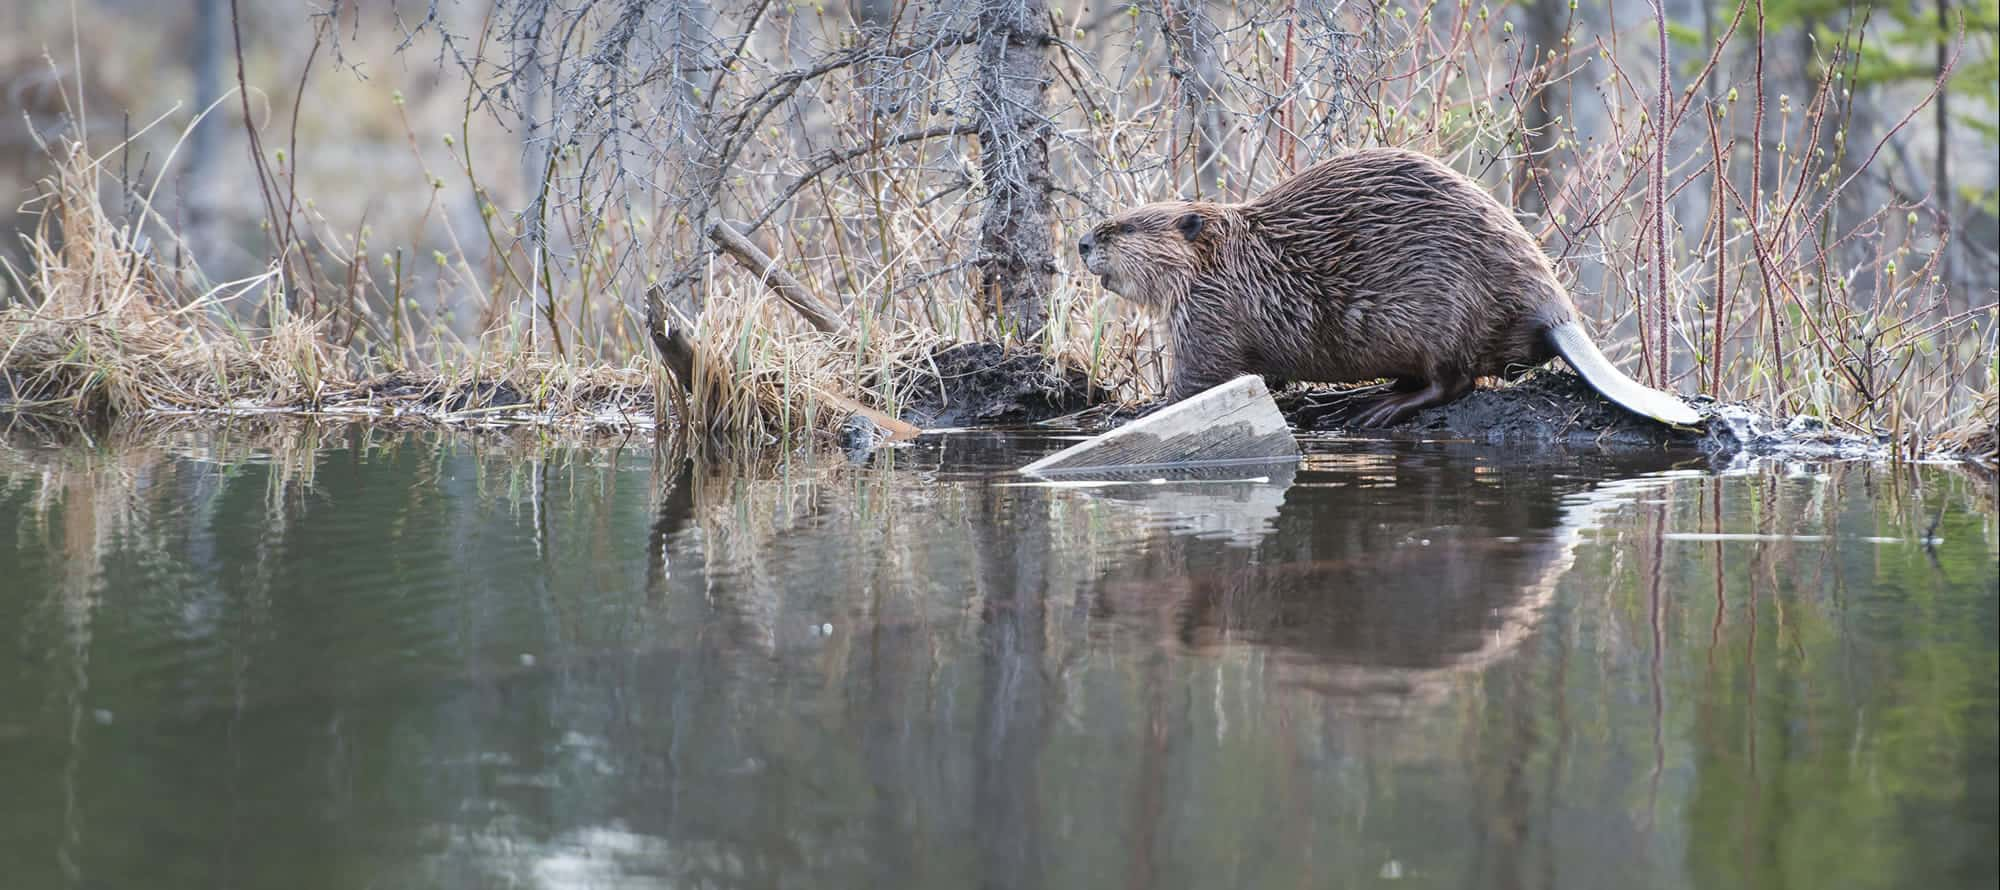 Beaver Solutions - flow management devices, beaver products, beaver problems, beaver removal, beaver control methods, beaver control devices, beaver pond leveler, how to get rid of beavers